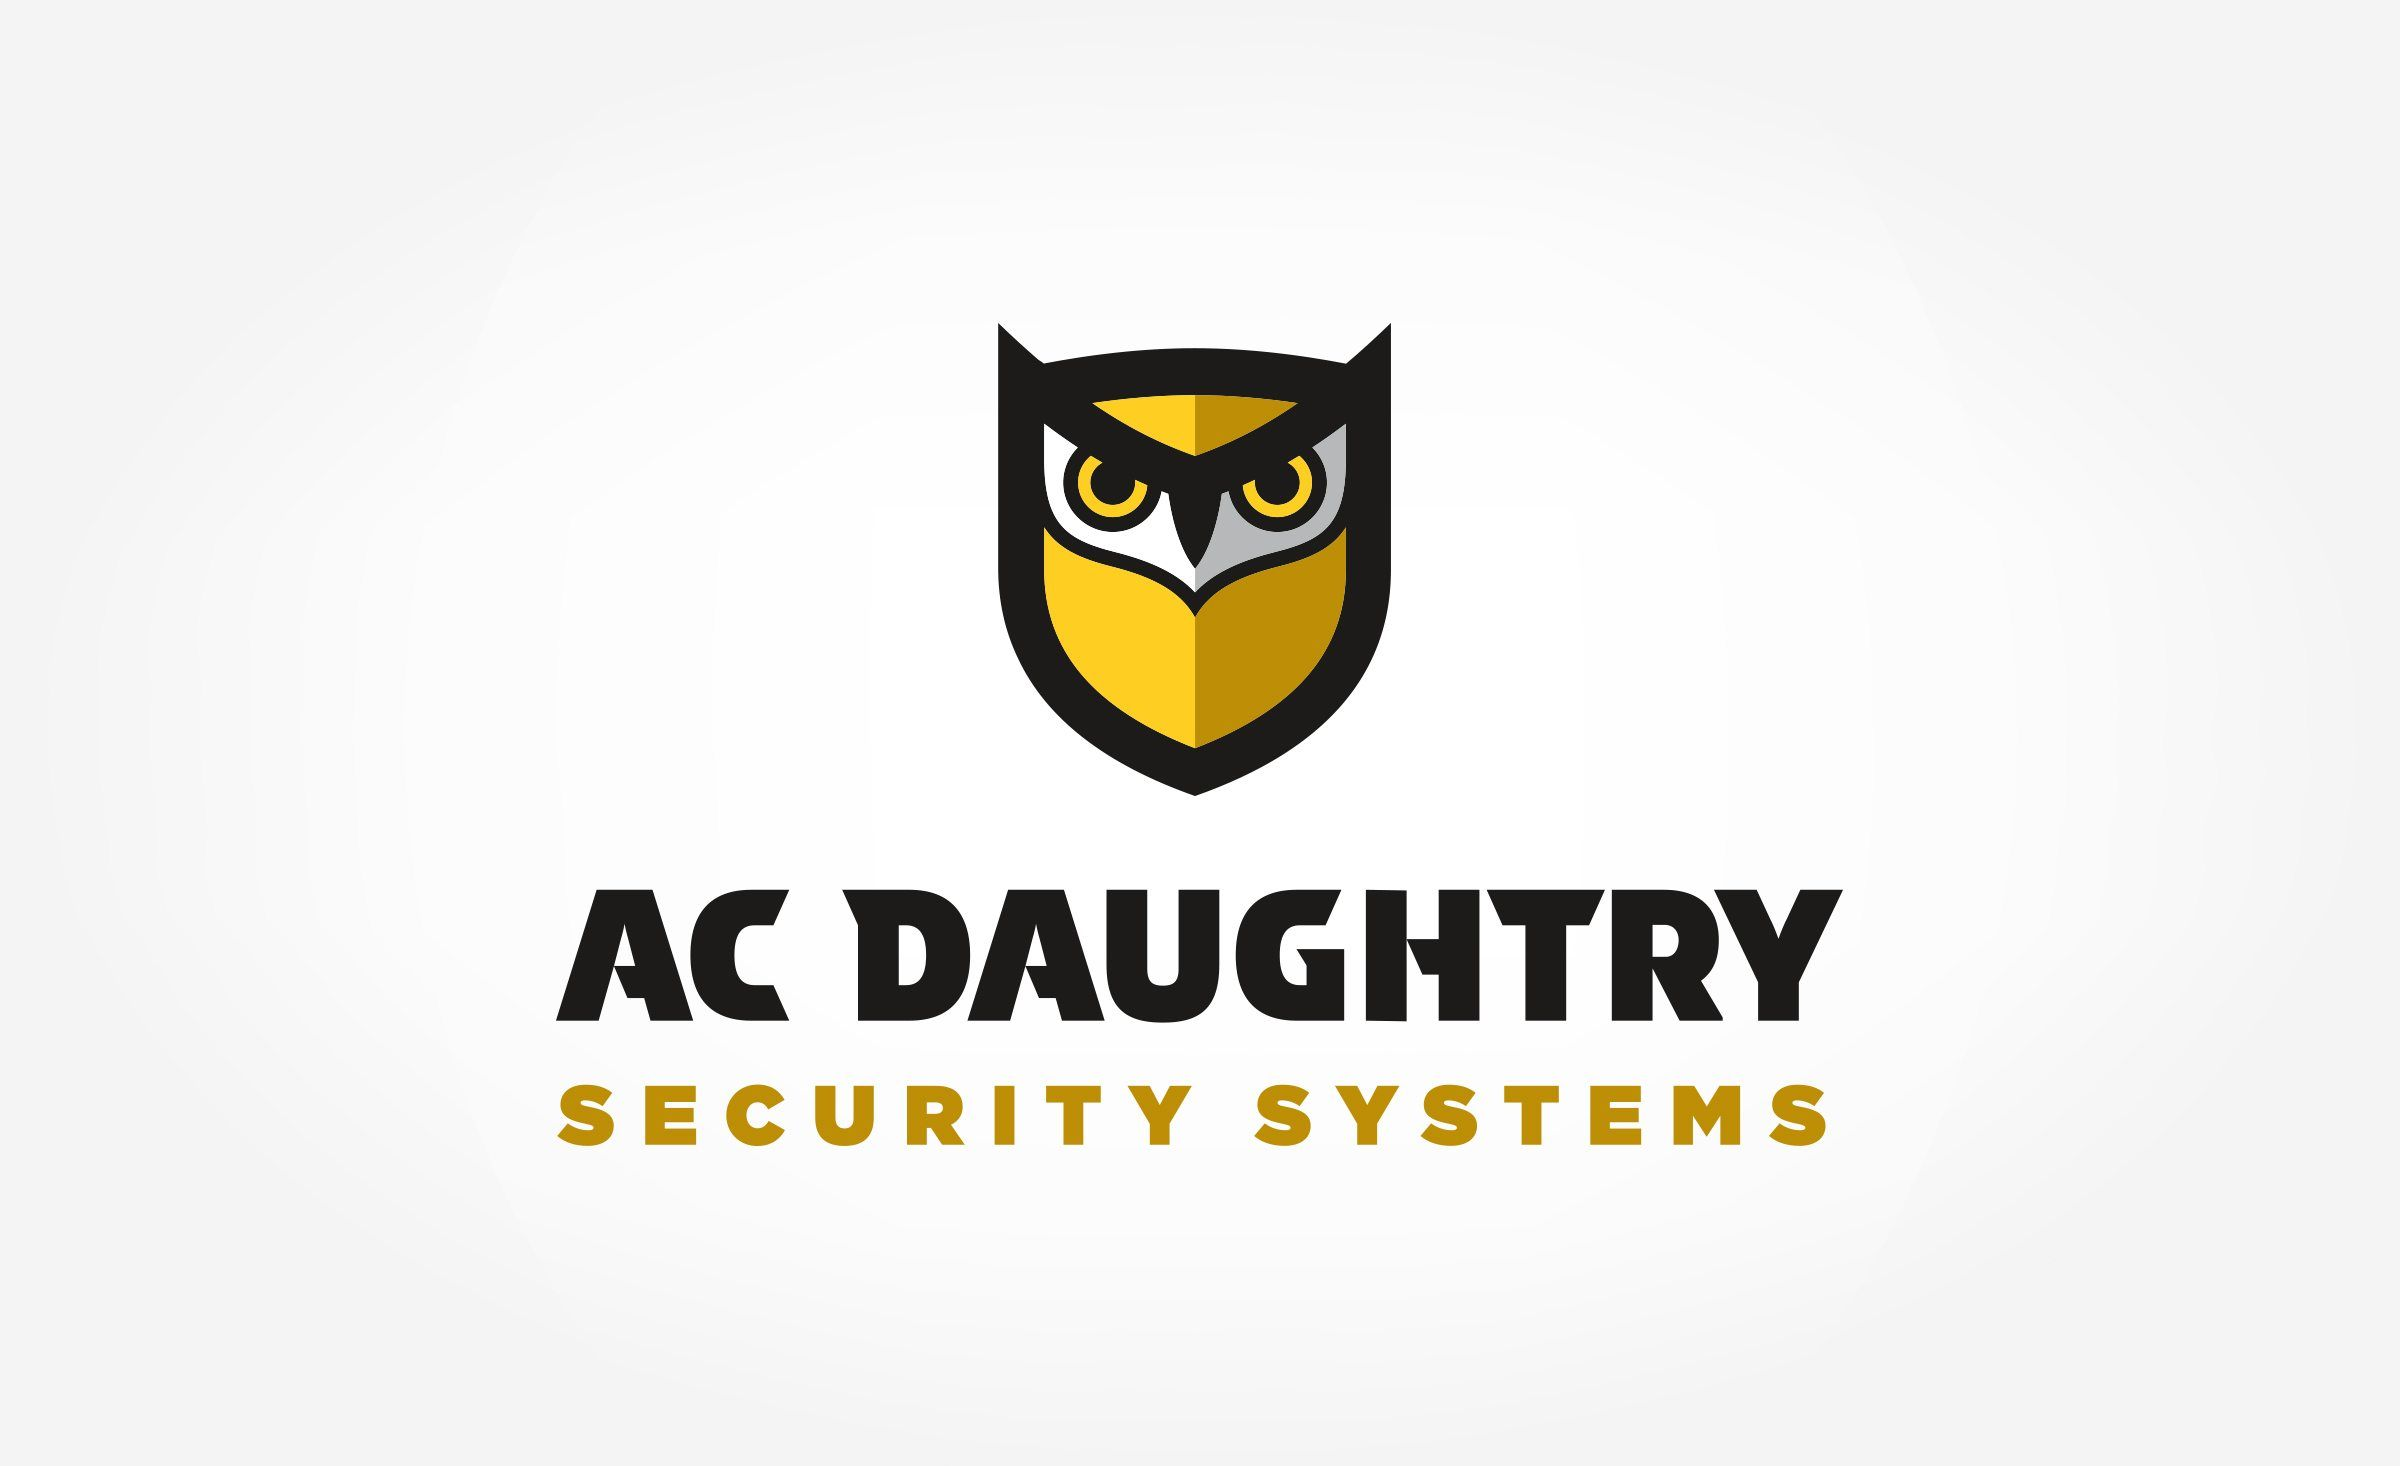 Logo design for A.C. Daughtry Security Systems, a security company